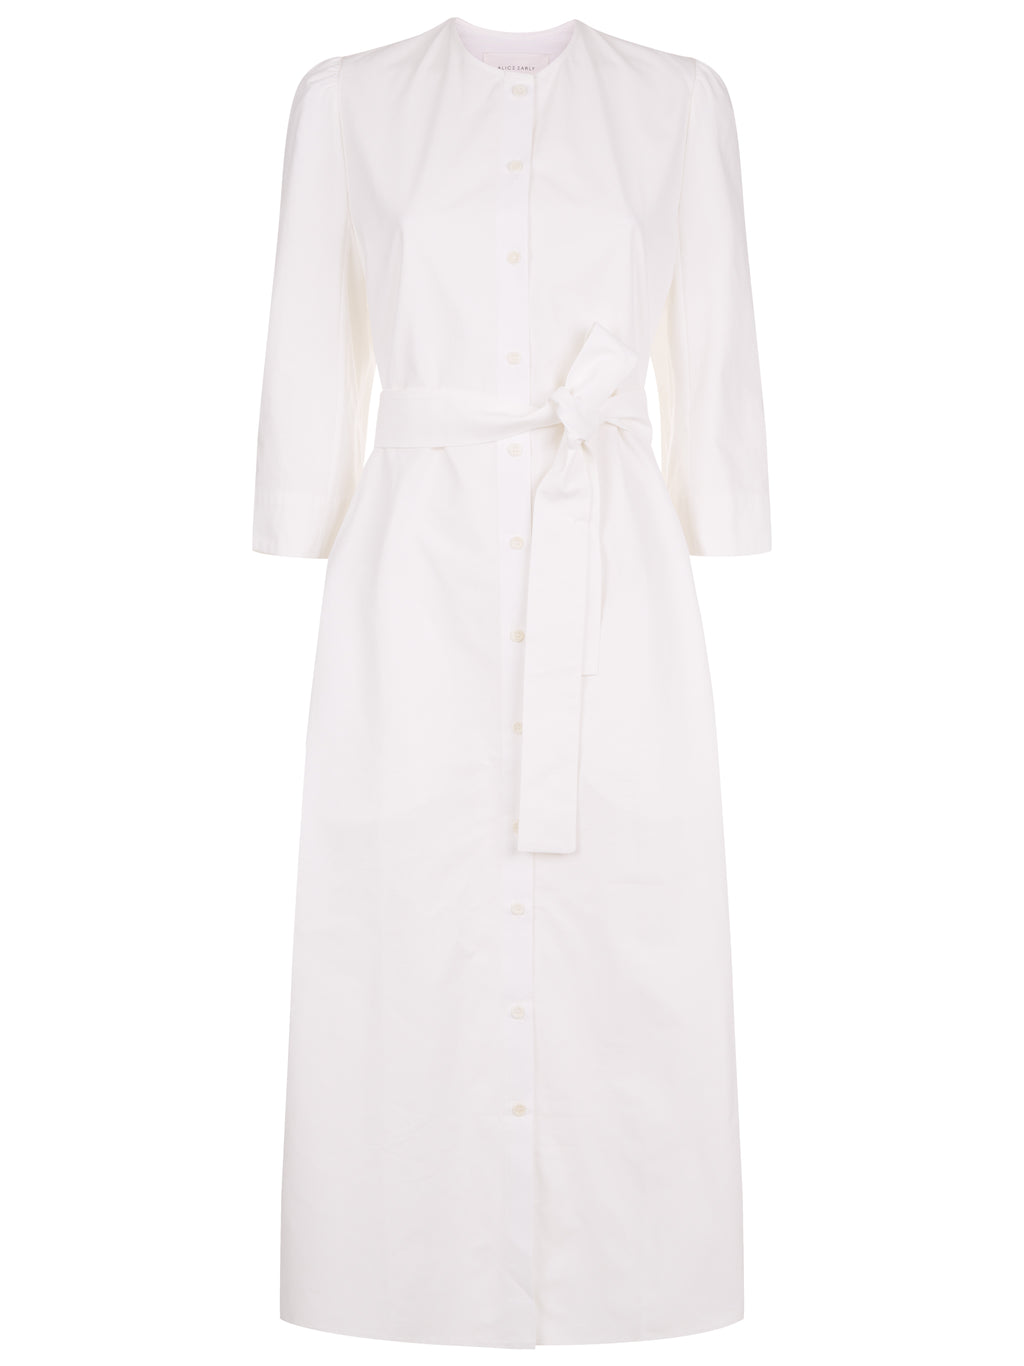 The Raminta Shirt Dress - White